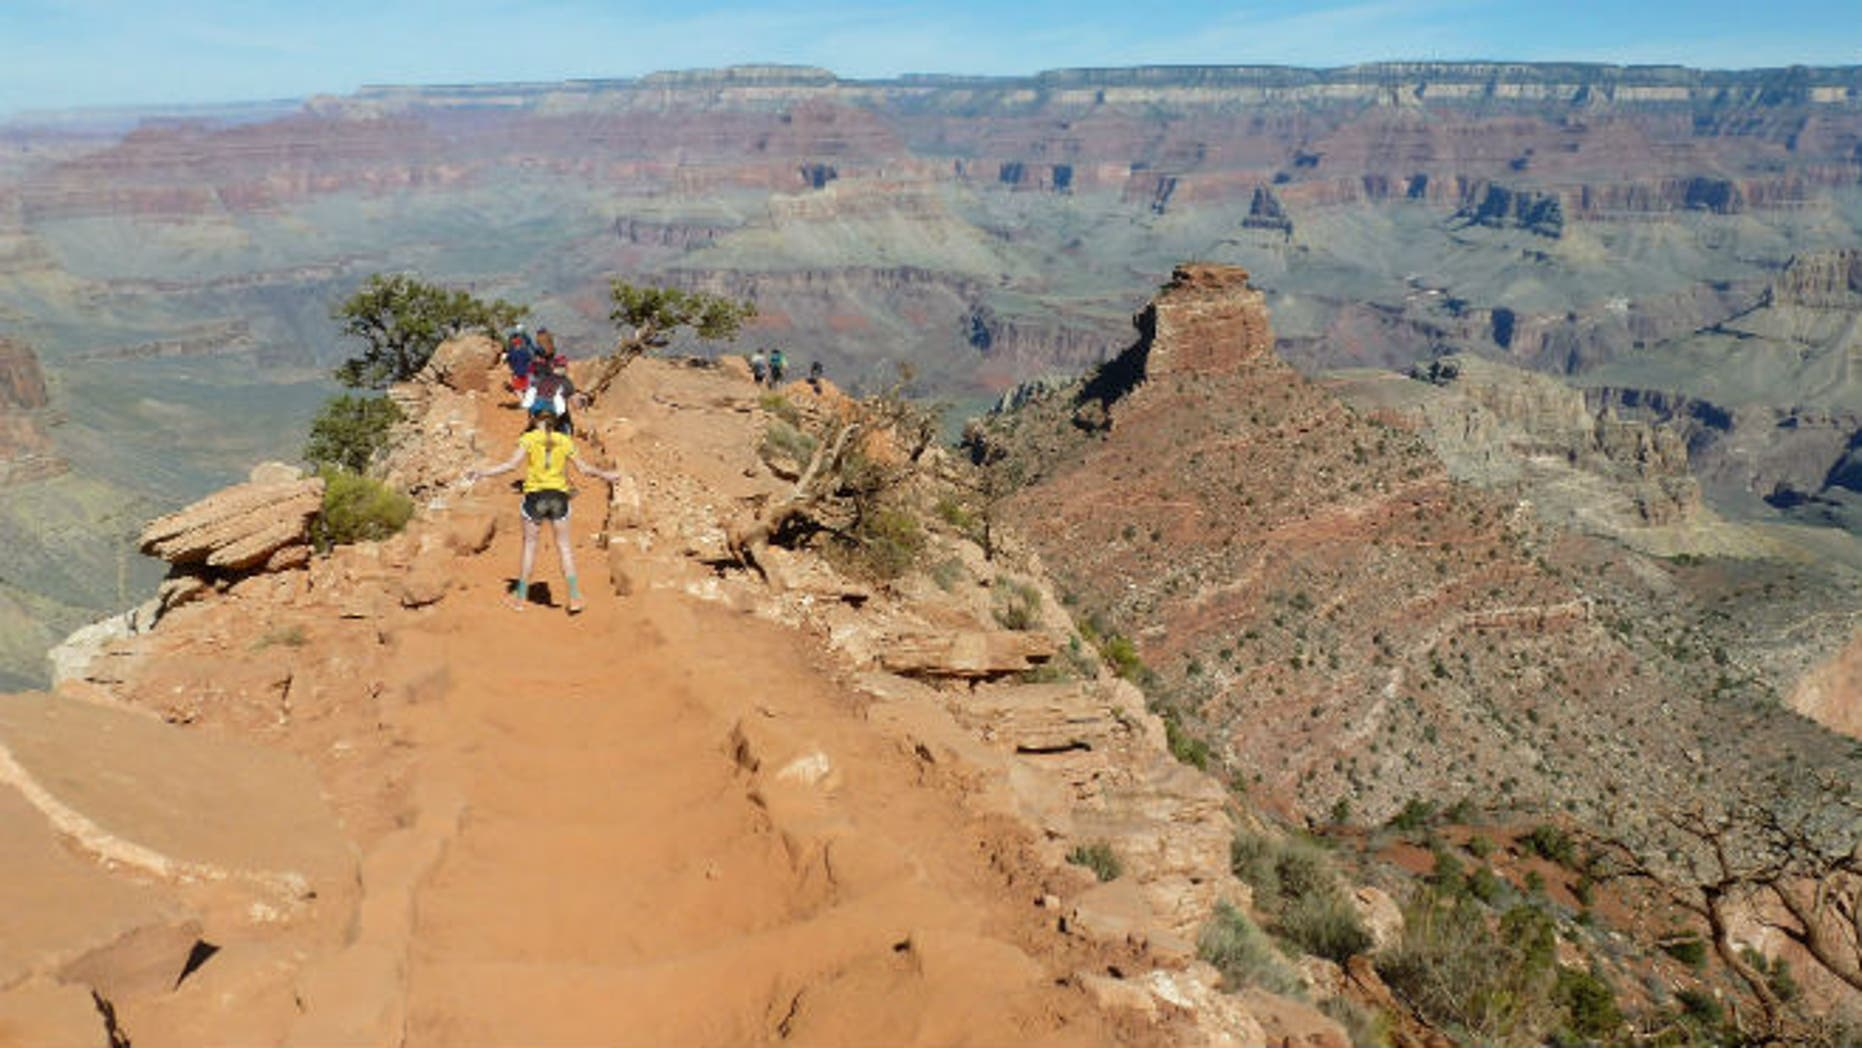 Hikers make their way along a ridgeline on the Grand Canyon National Park's South Kaibab trail on March 16, 2015. (AP Photo/Anna Johnson)